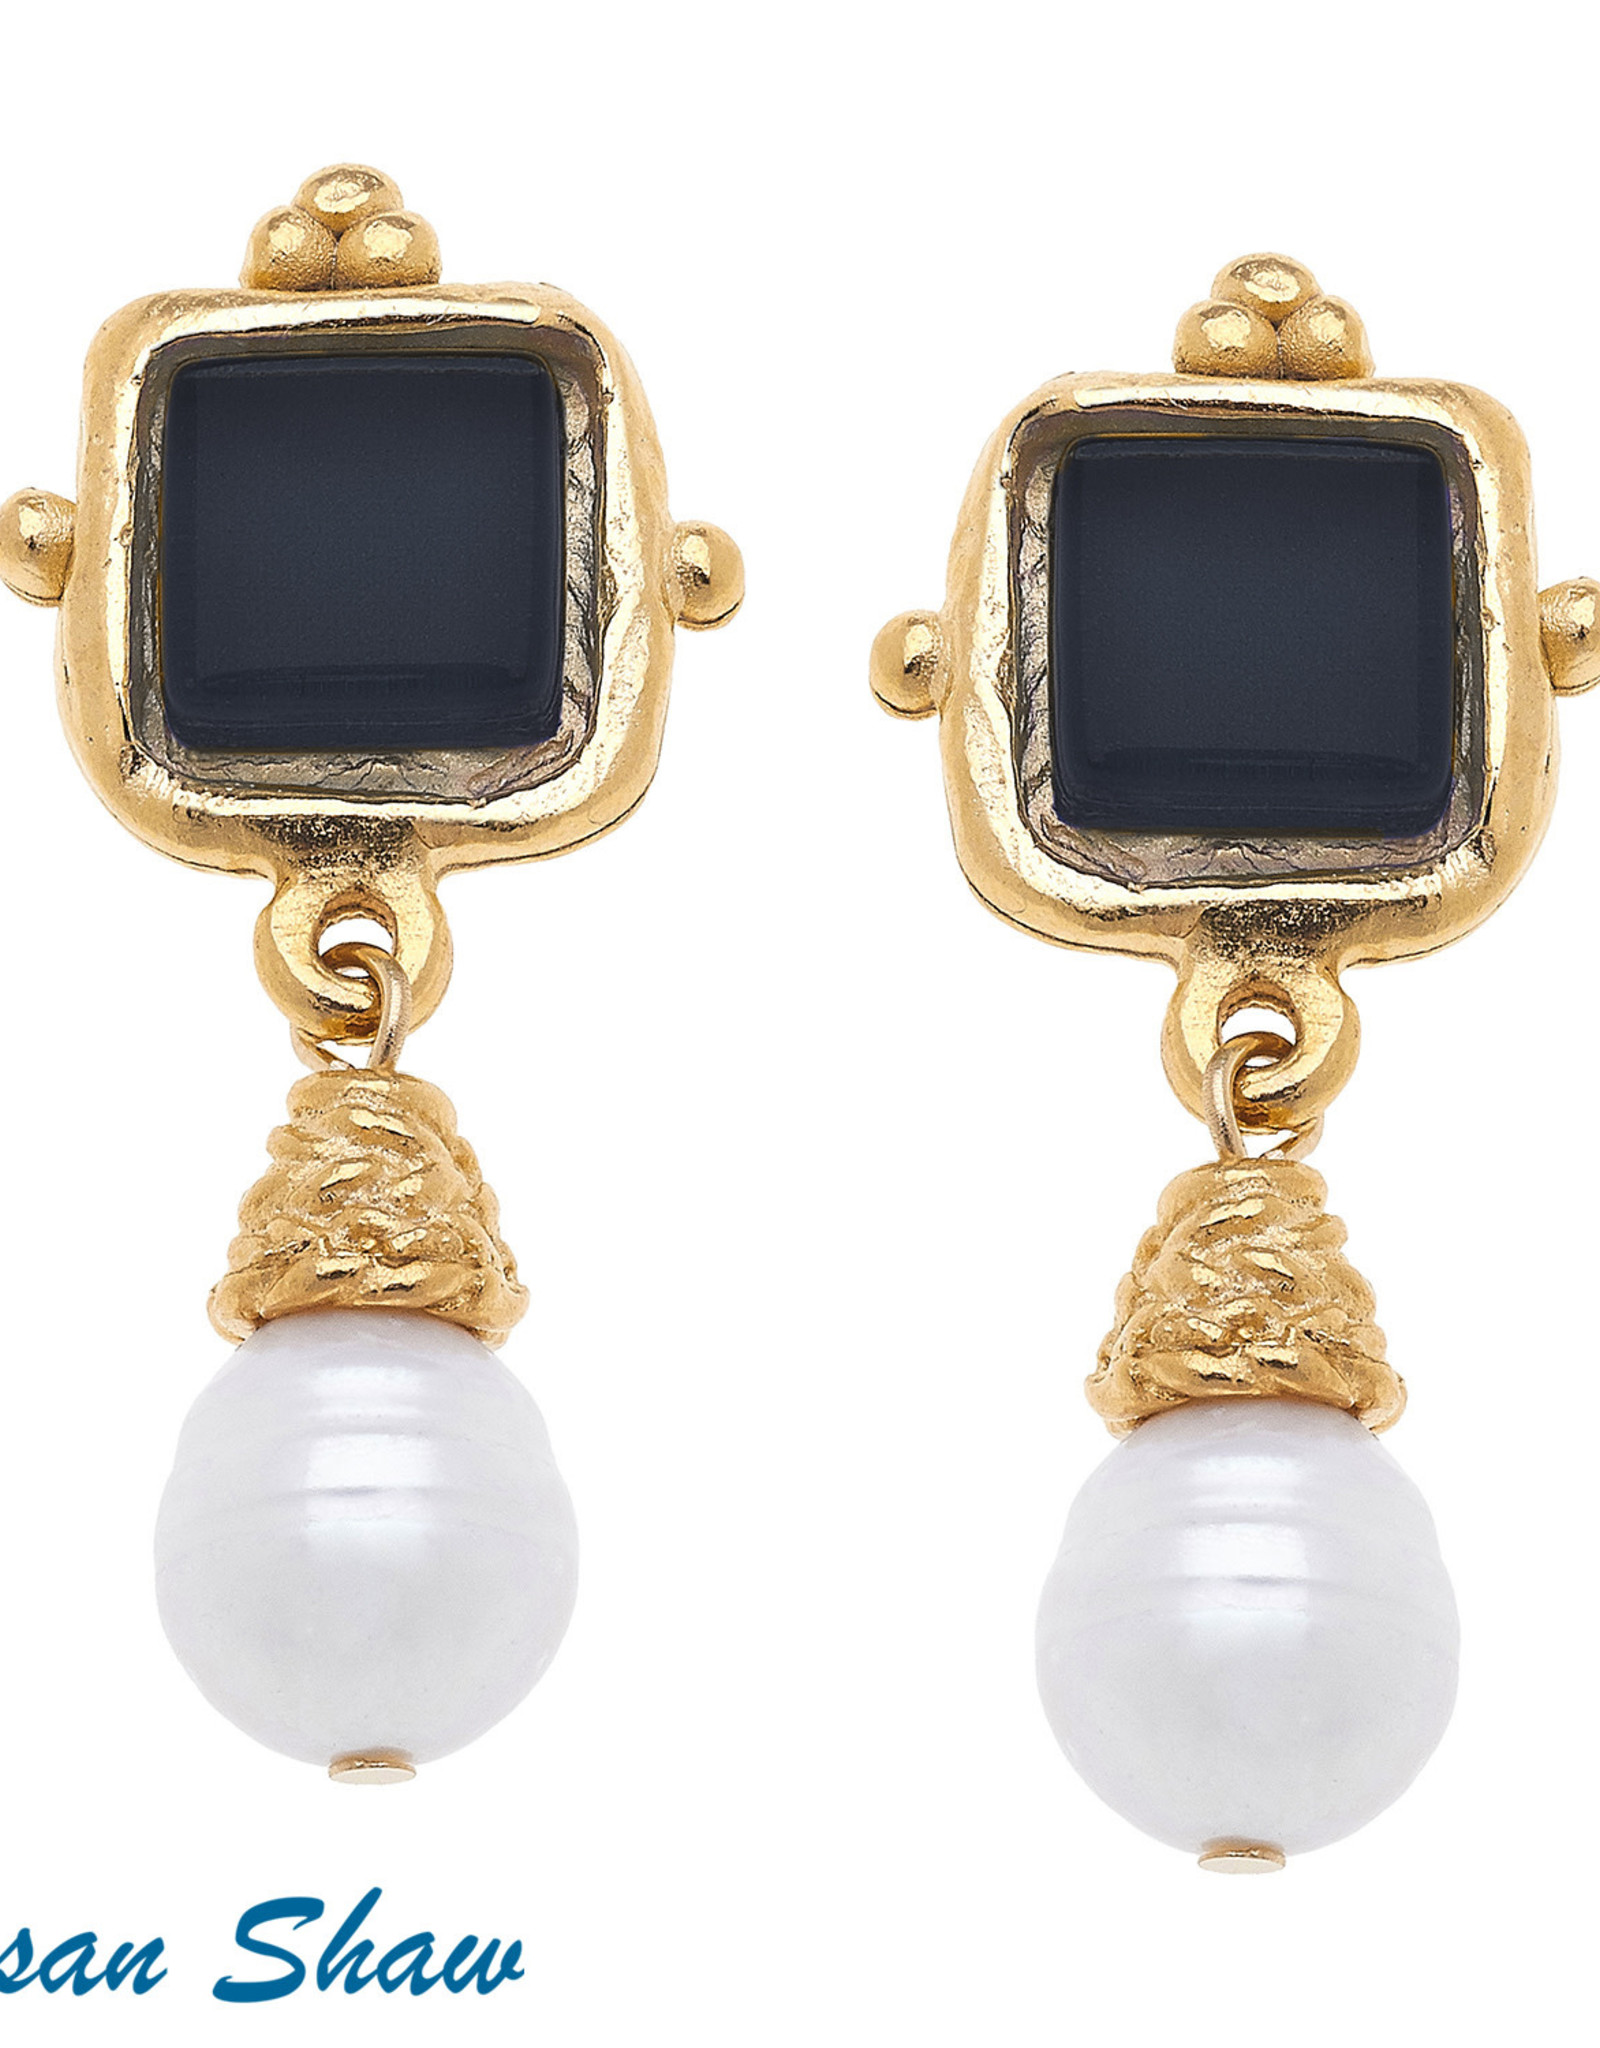 Susan Shaw Shaw Earrings GOLD Square/BLACK Glass/Pearl Drop CLIP-ON